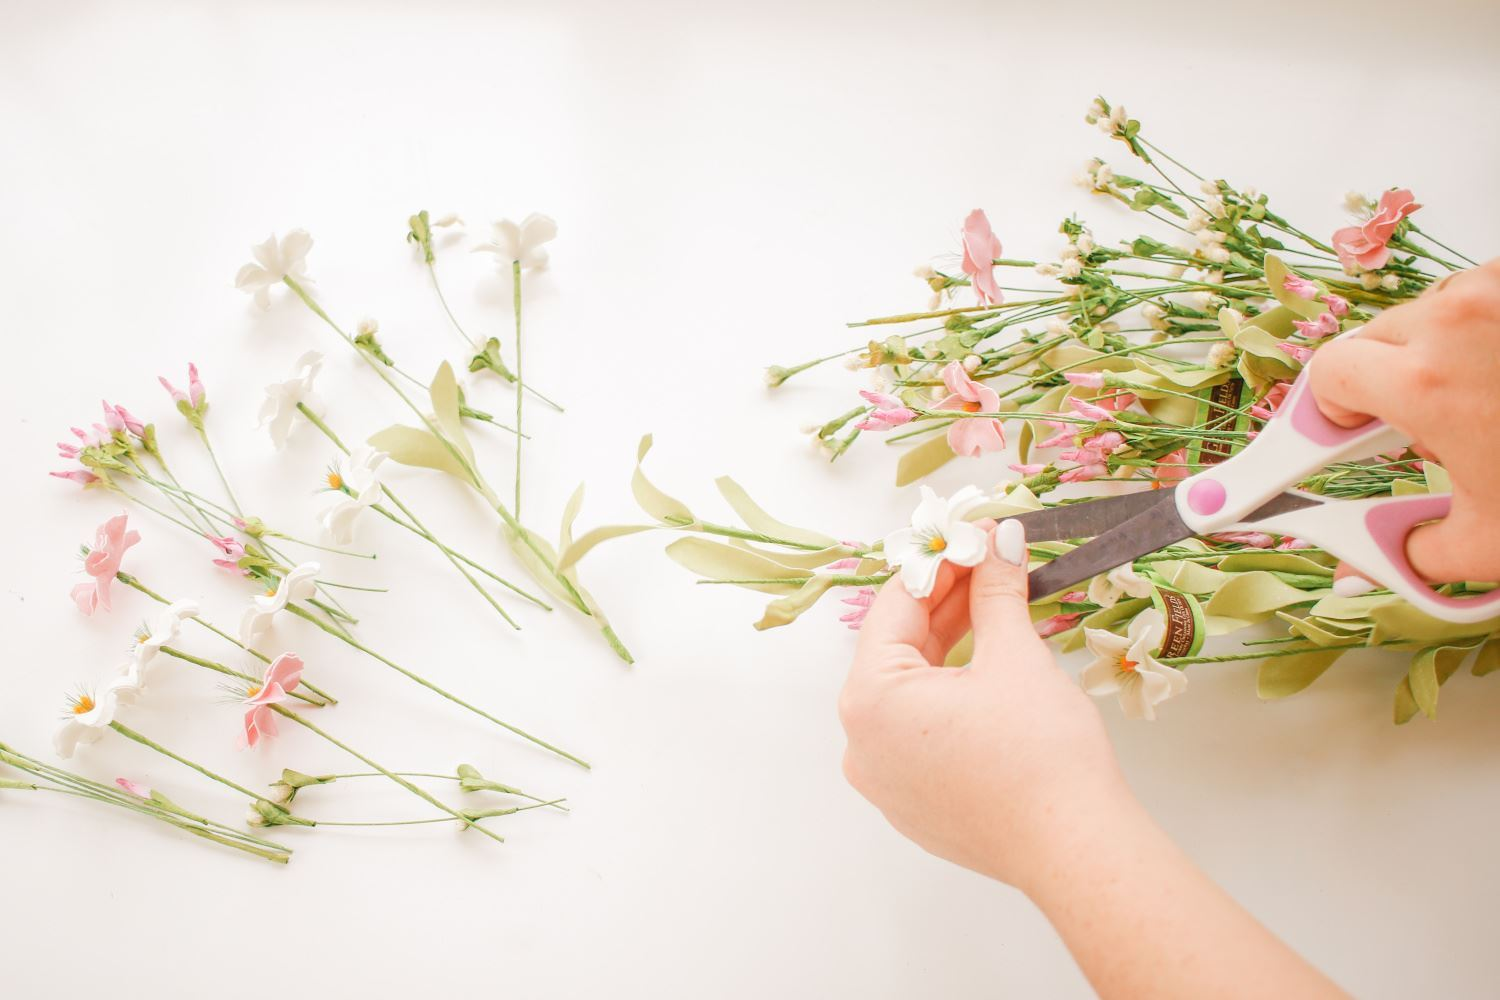 Cut flowers from stems